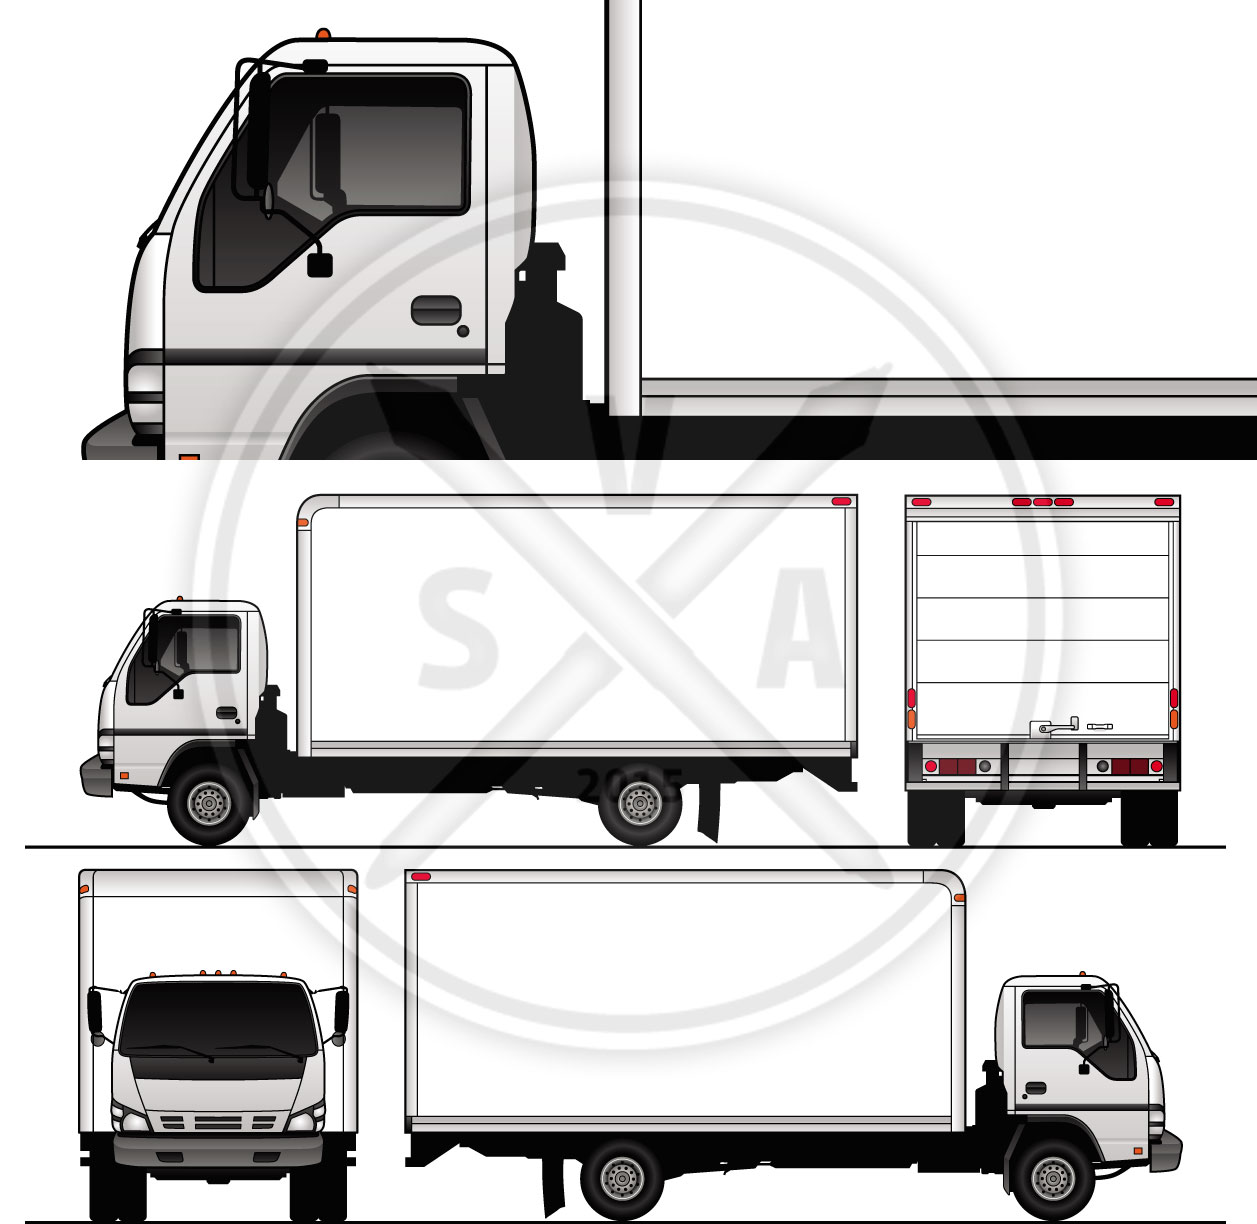 cabover cubevan stock vector graphics for wrap design